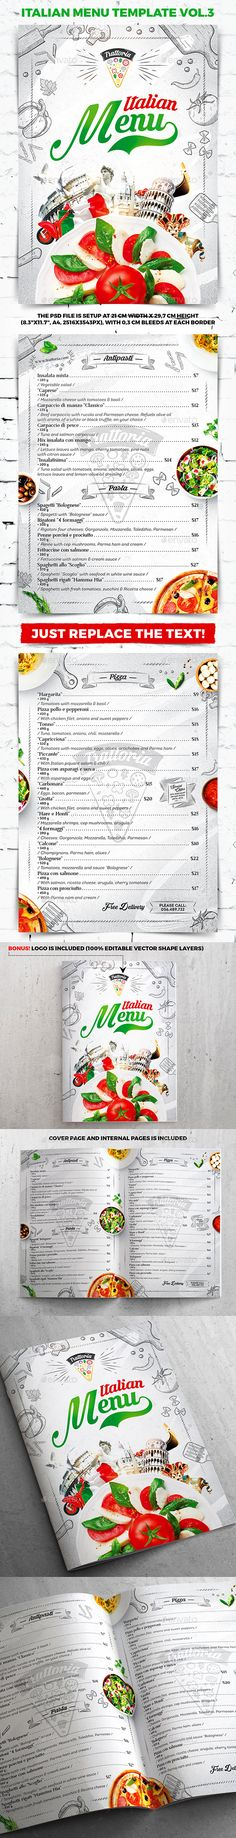 Italian Menu Template vol.3 — Photoshop PSD #pizza flyer #coffee • Download ➝ https://graphicriver.net/item/italian-menu-template-vol3/20313921?ref=pxcr